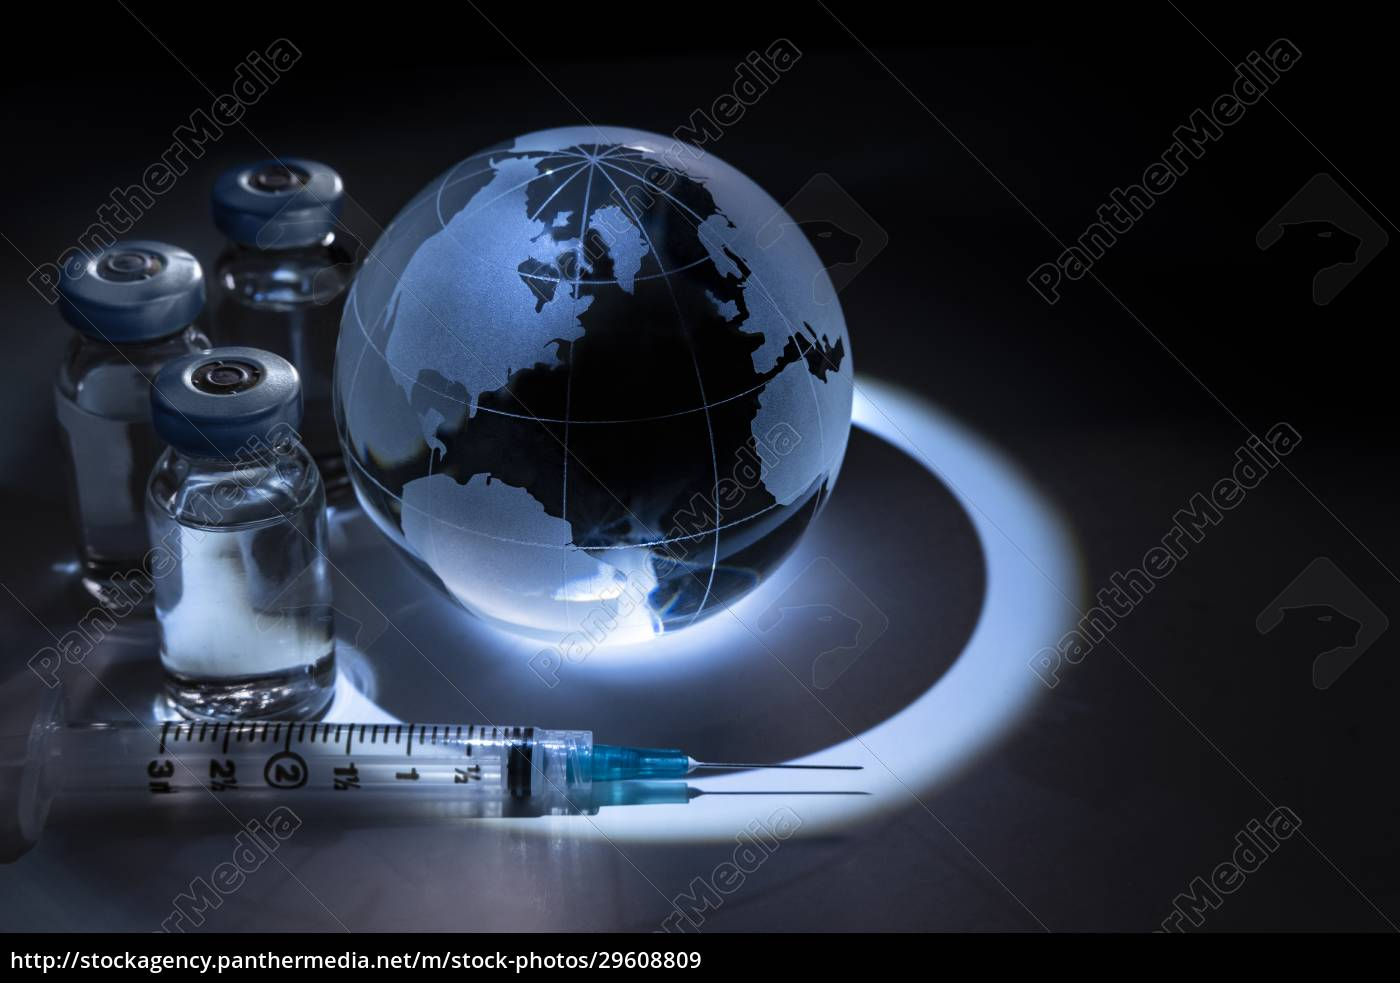 glass, globe, with, vials, and, syringe - 29608809